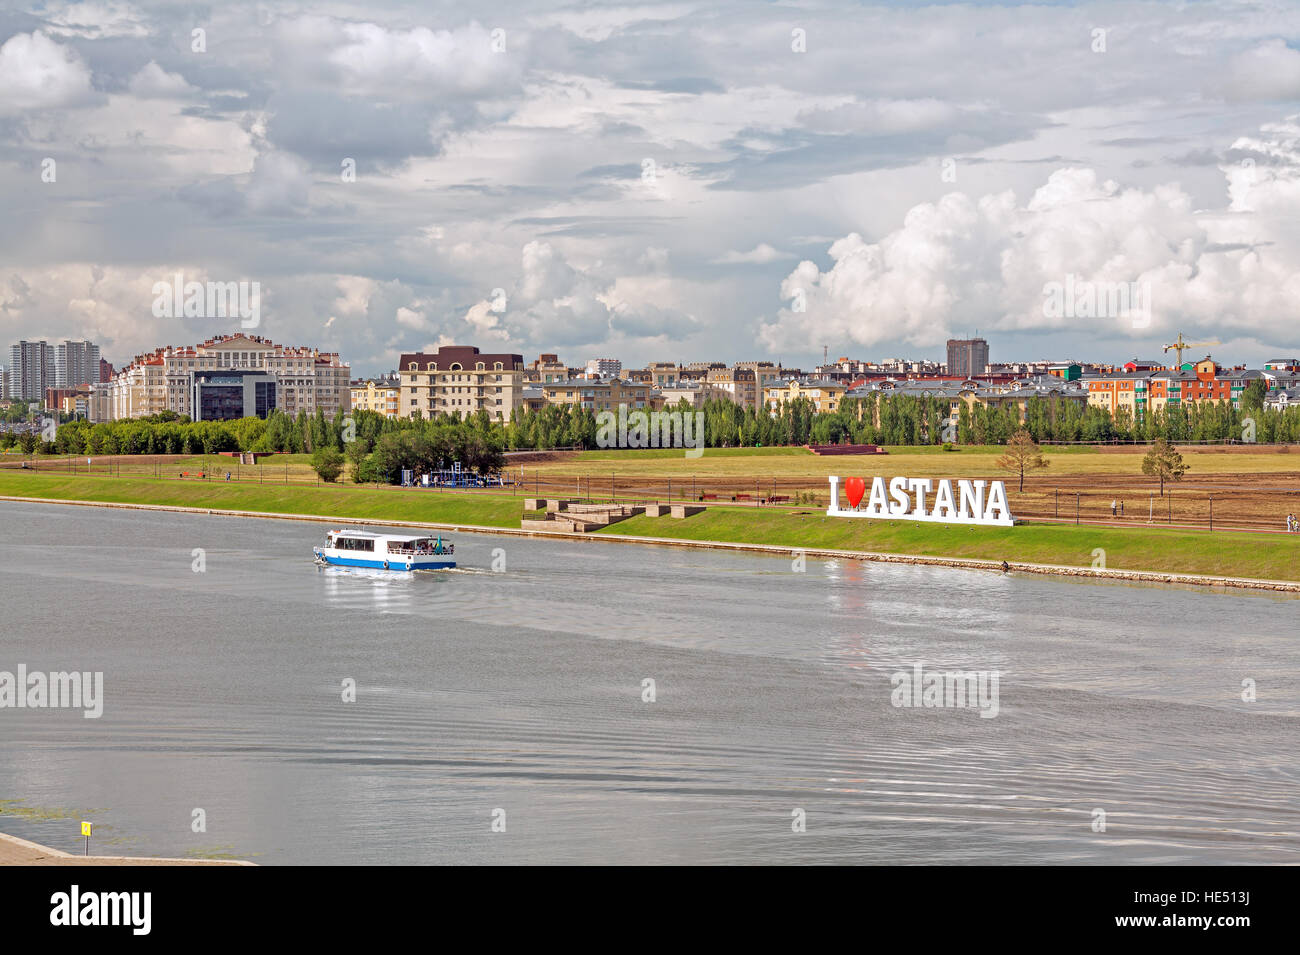 Ishim river, downtown of Astana city, Kazakhstan. - Stock Image